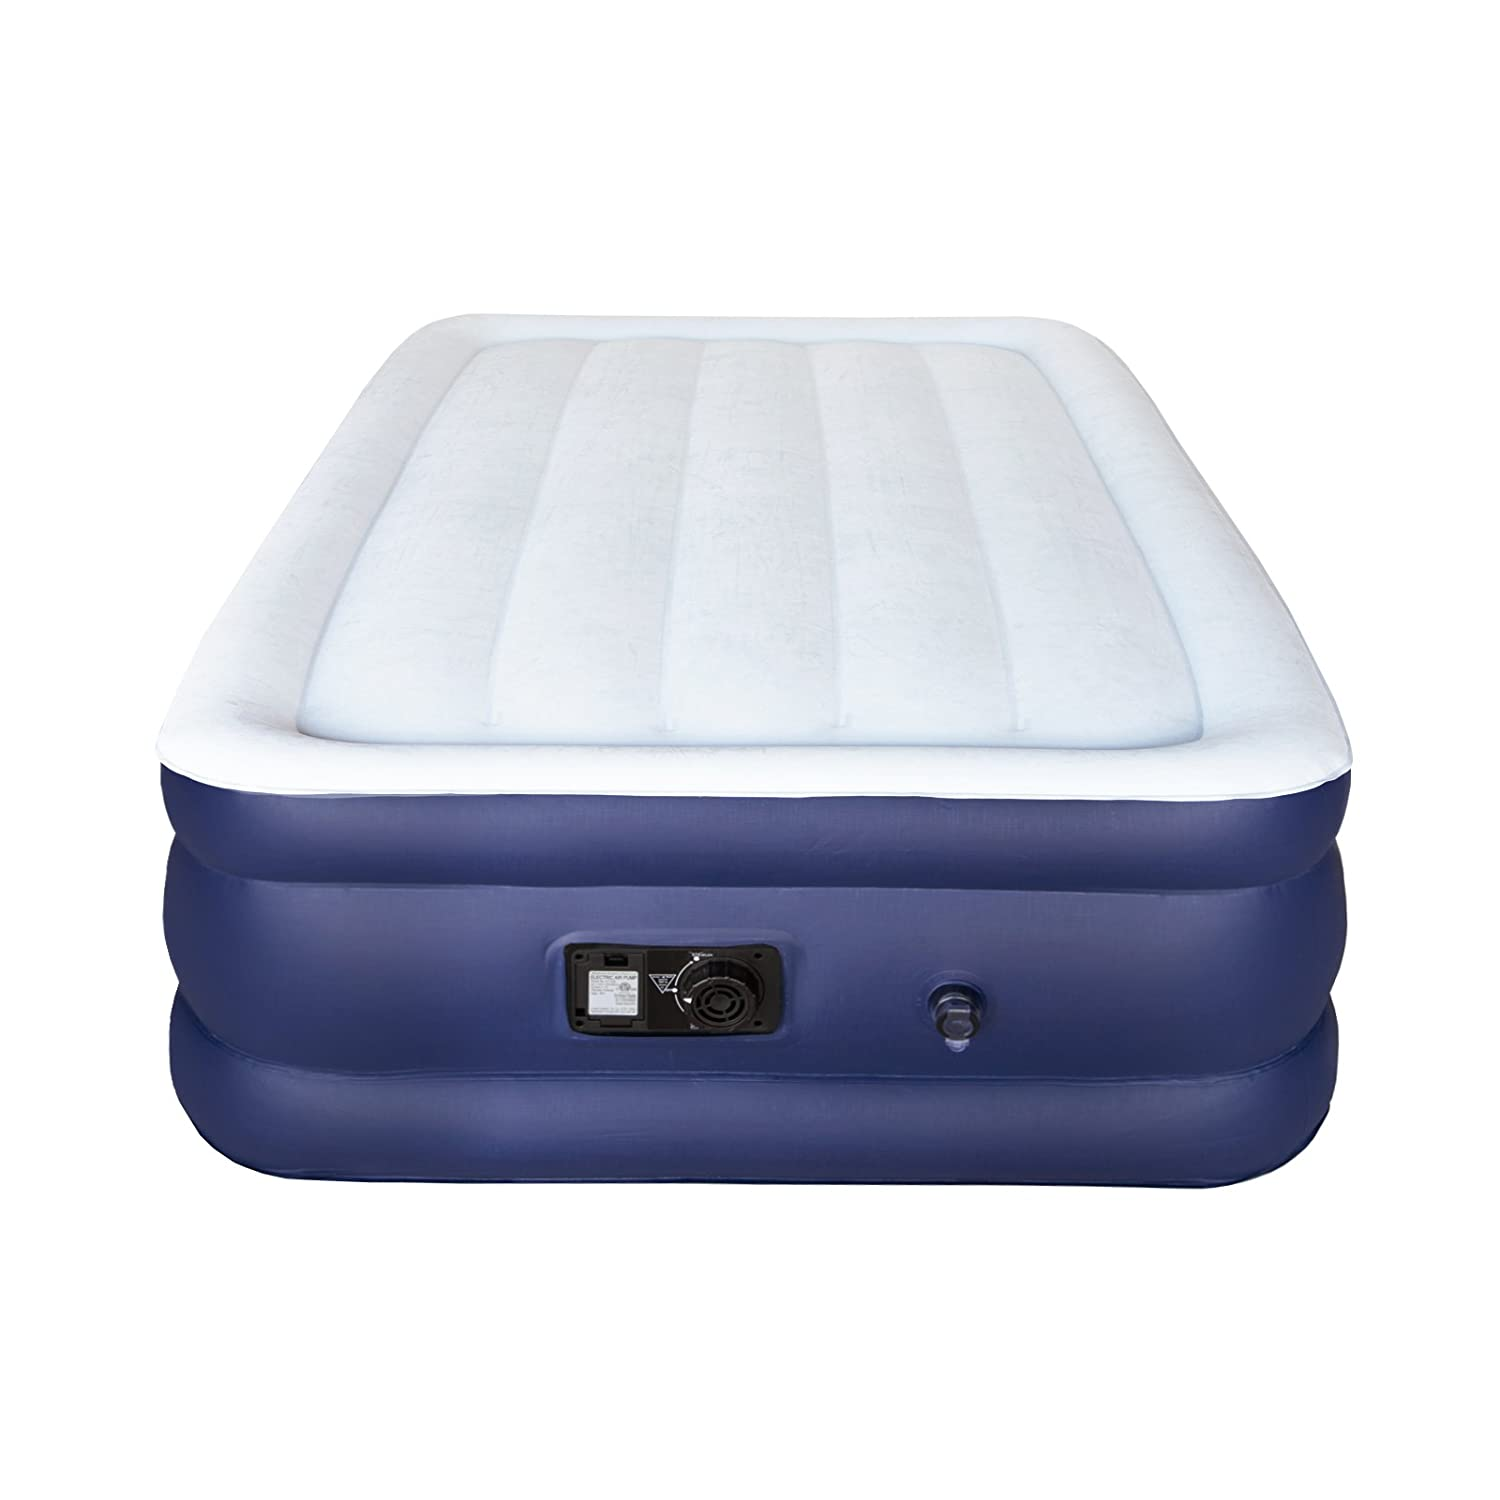 Air Mattress with Built-in Electric Pump, Sable Raised Blow up Inflatable Airbed with a Storage Bag , Height 18 Inches for an Adult, Twin Size SA-HF034